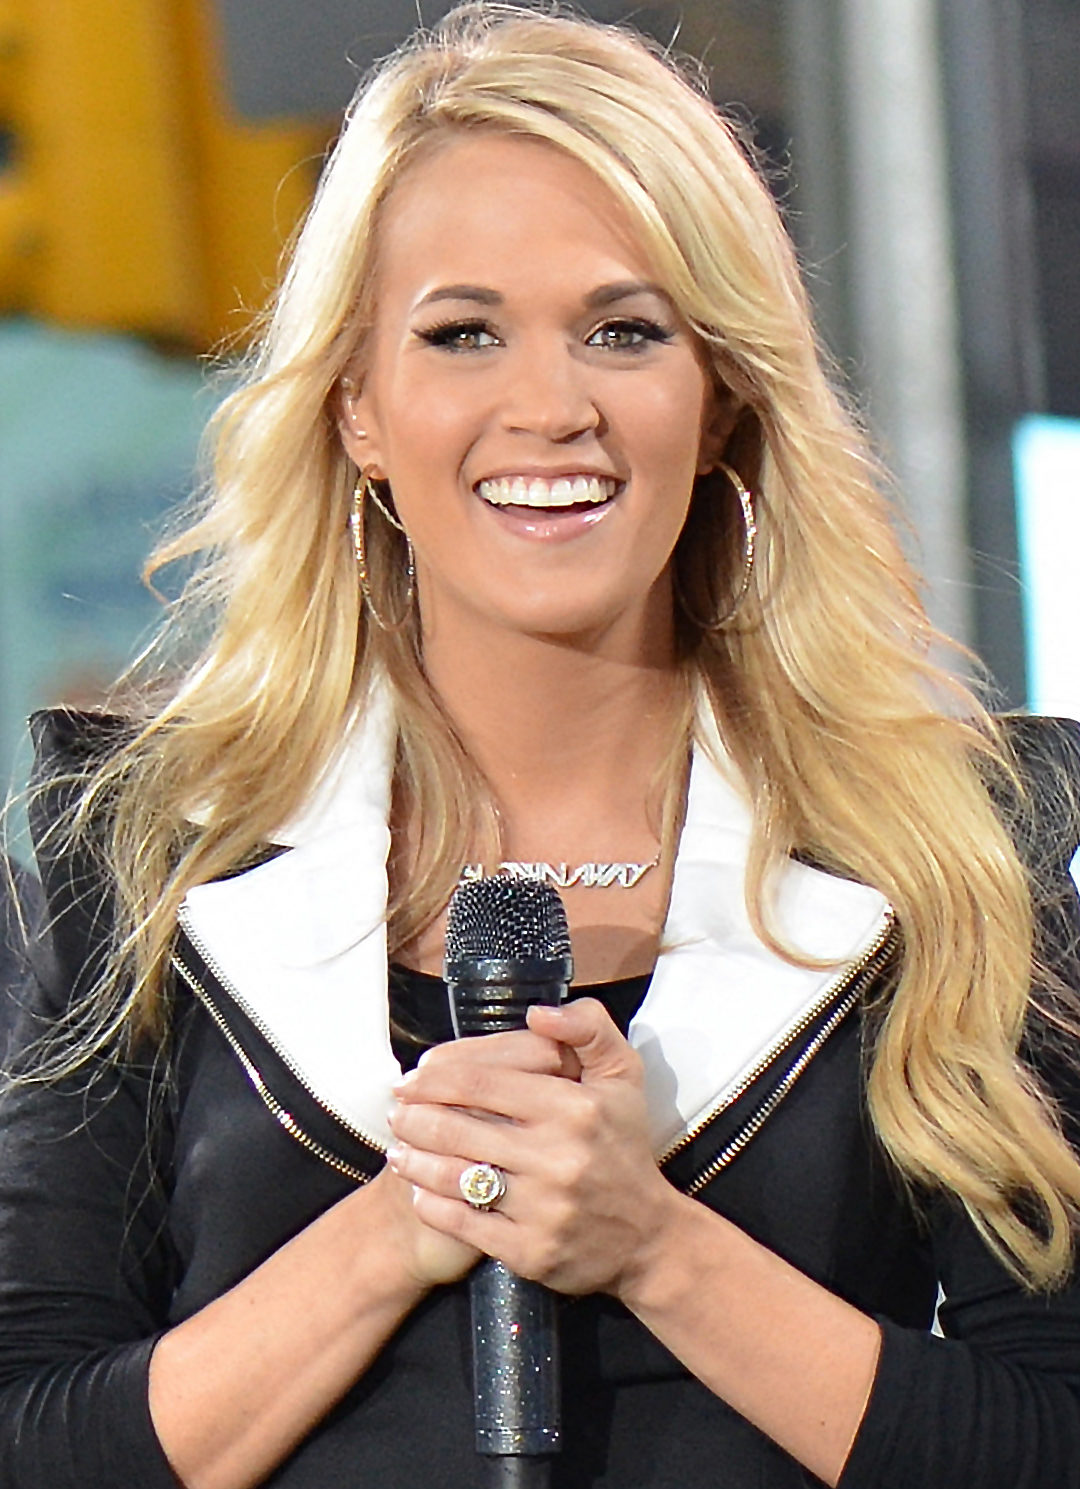 Carrie Underwood on How Tricky It is For a Woman to Write a Party Song